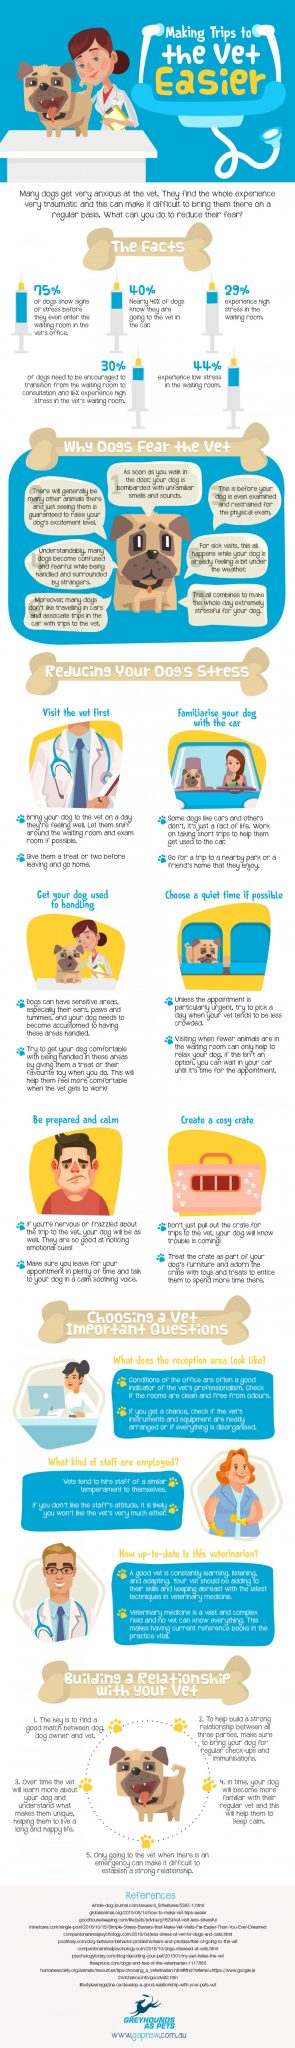 infographic with statistics and helpful advice for taking dogs to the vet